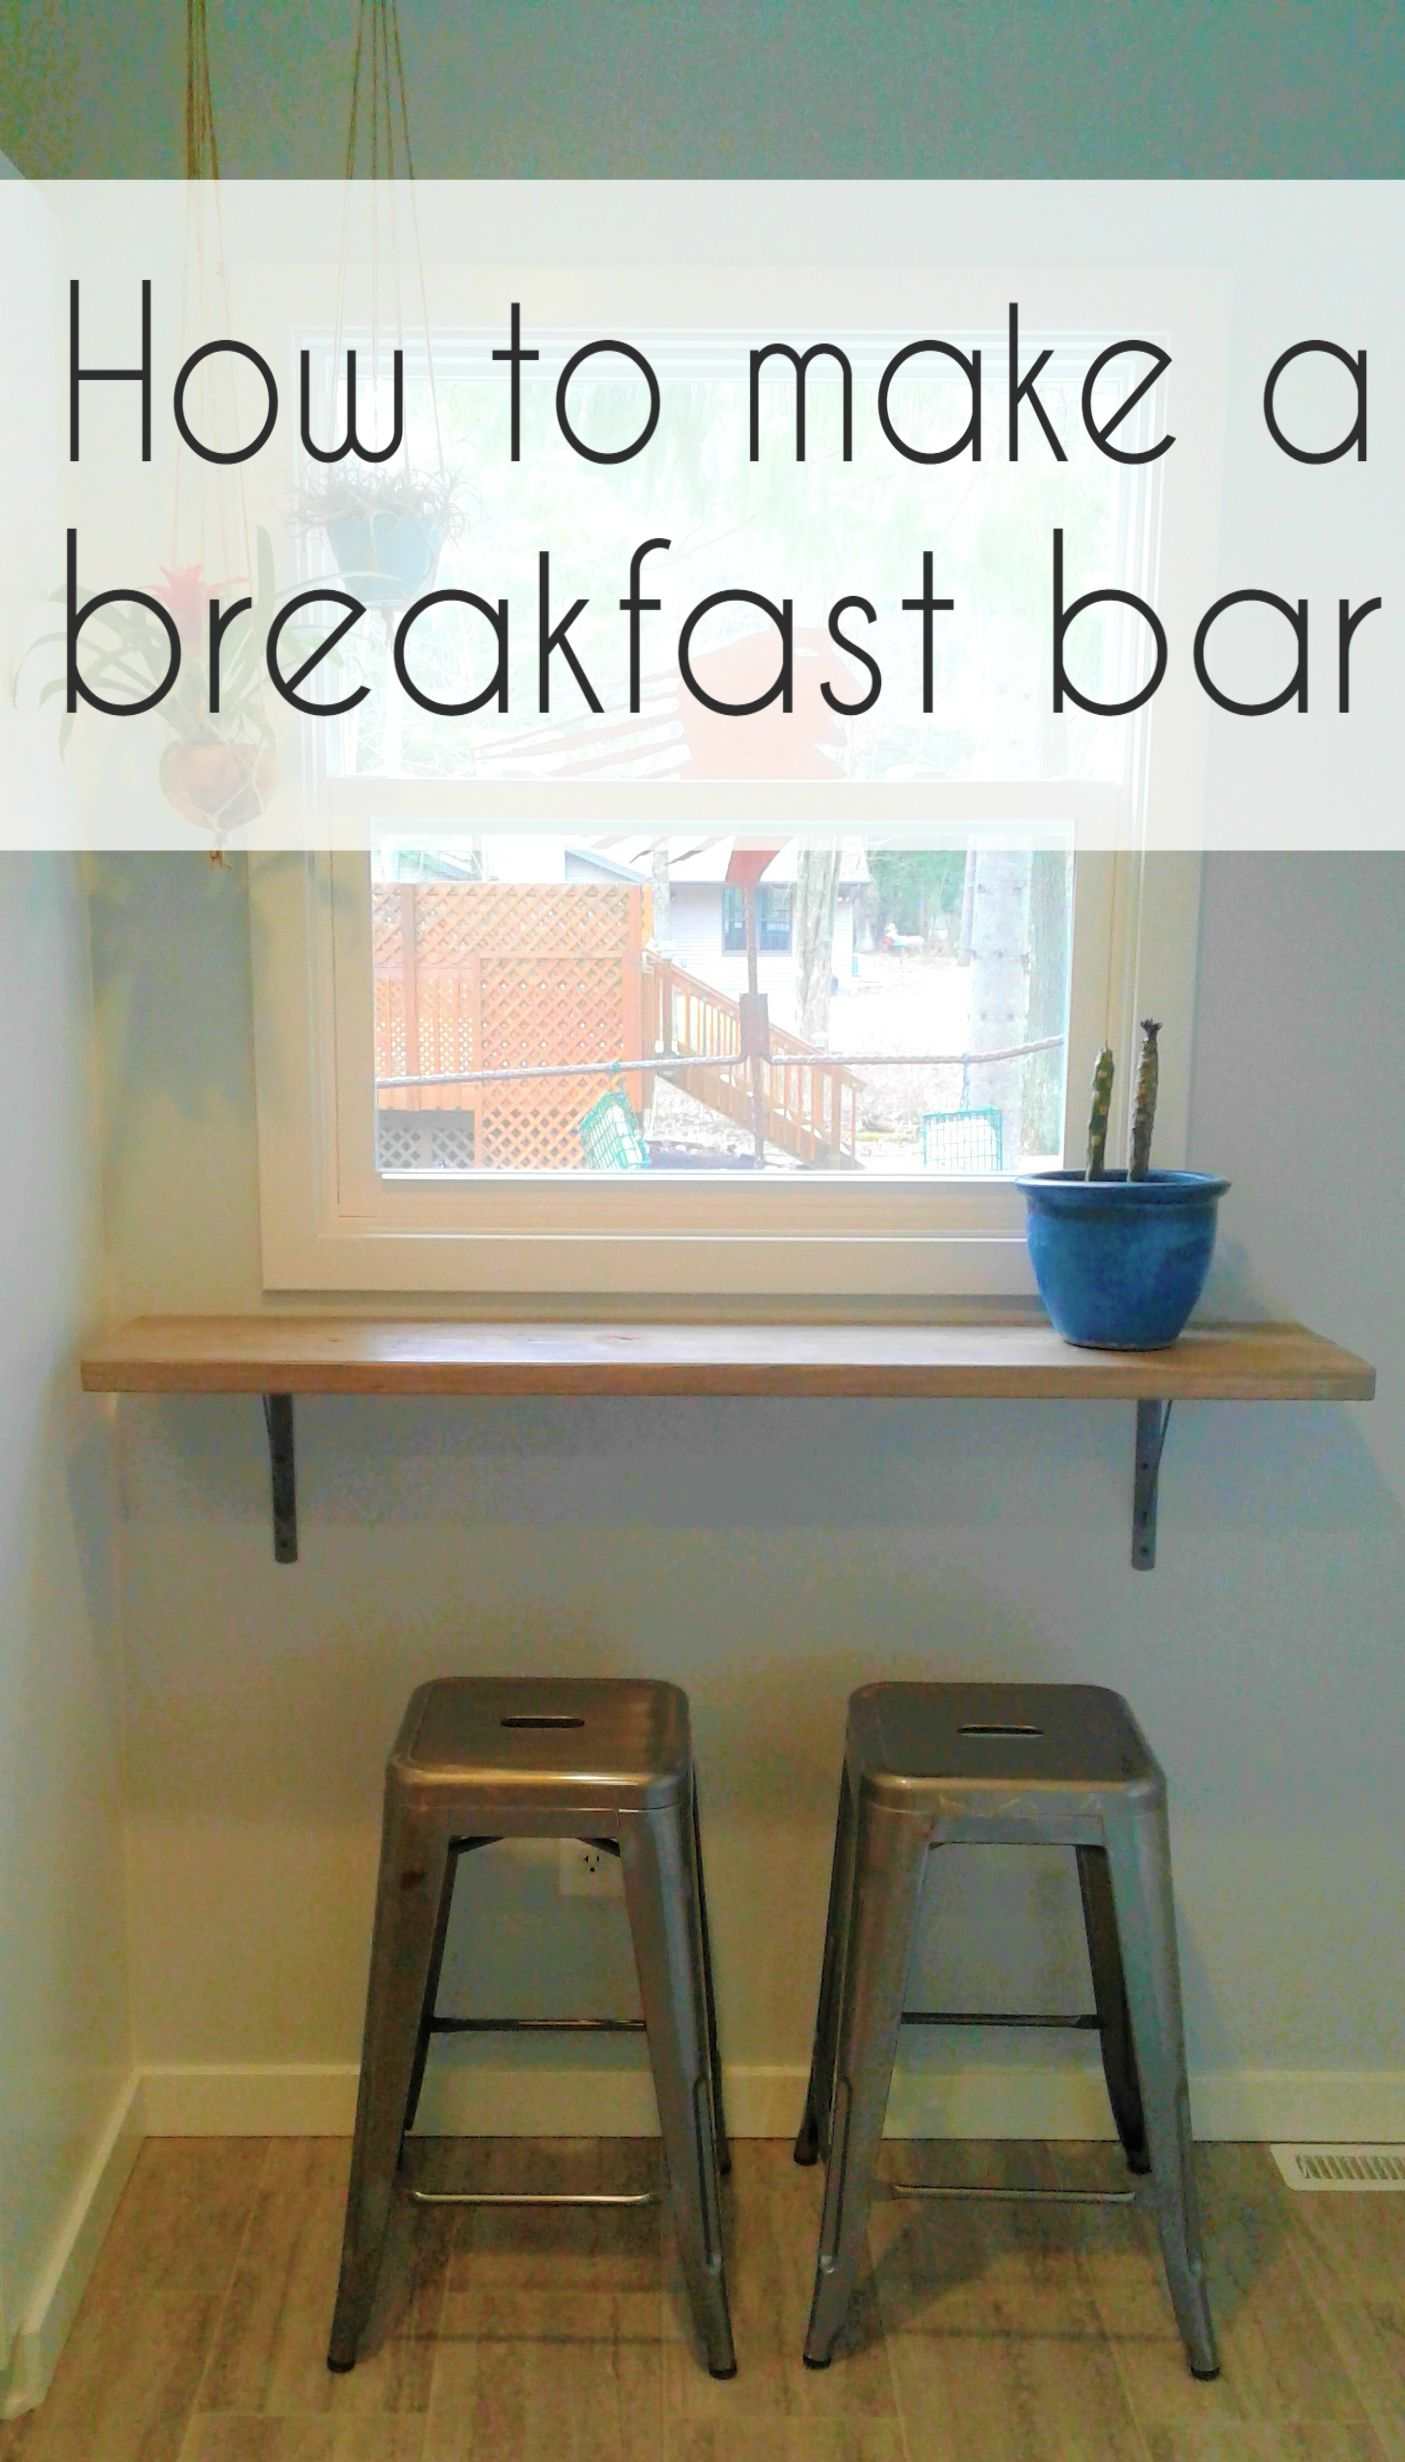 How To Install An Easy Breakfast Bar Simple Kitchen Remodel Diy Breakfast Bar Kitchen Bar Counter